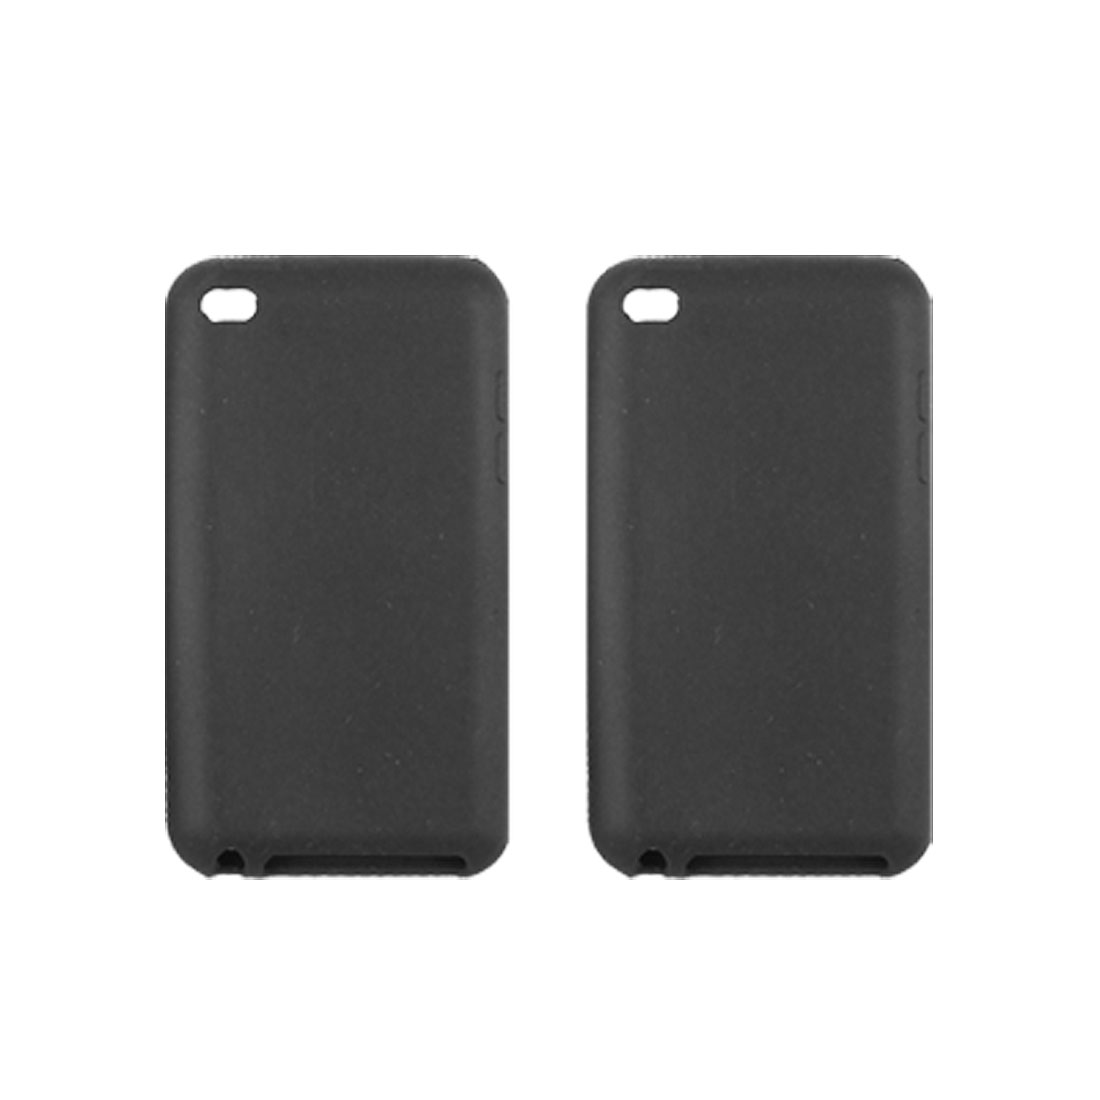 Silicone Skin 2Pcs Black Protector for iPod Touch 4G